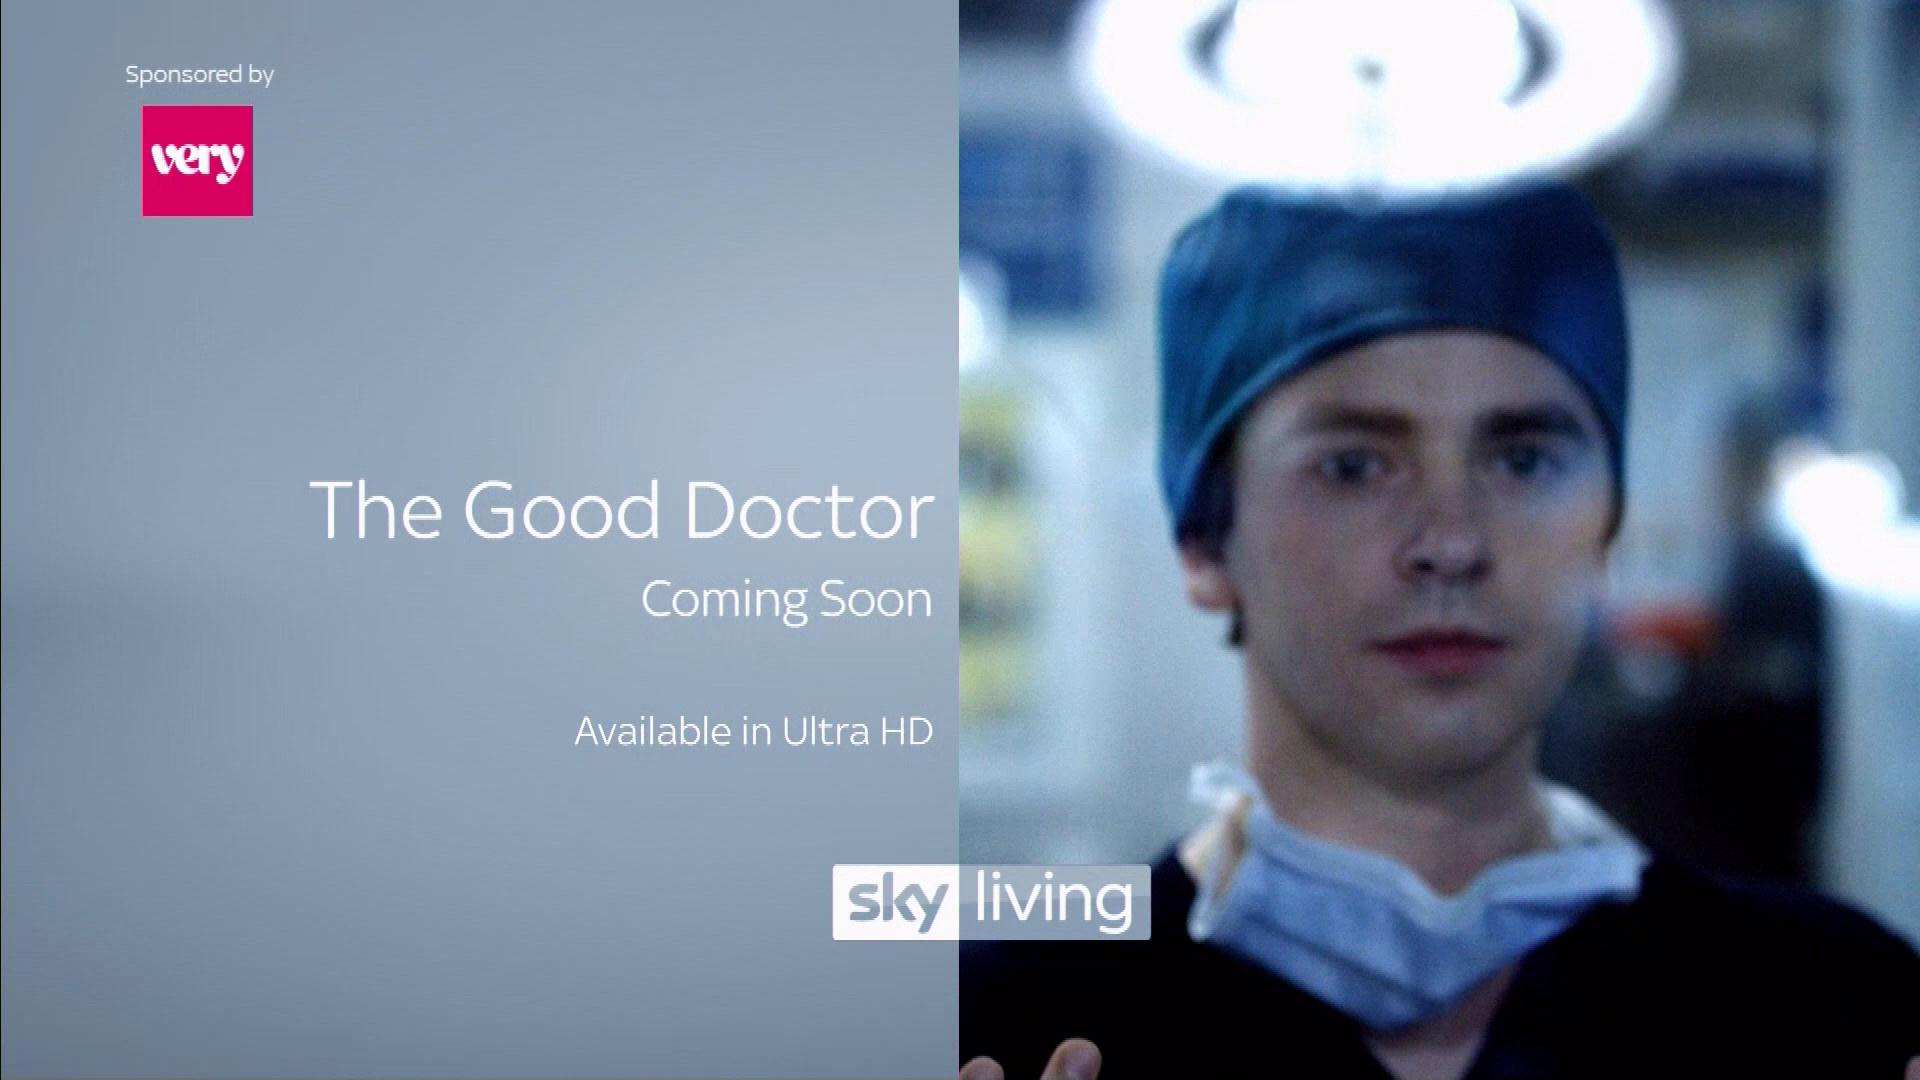 The good doctor sky living